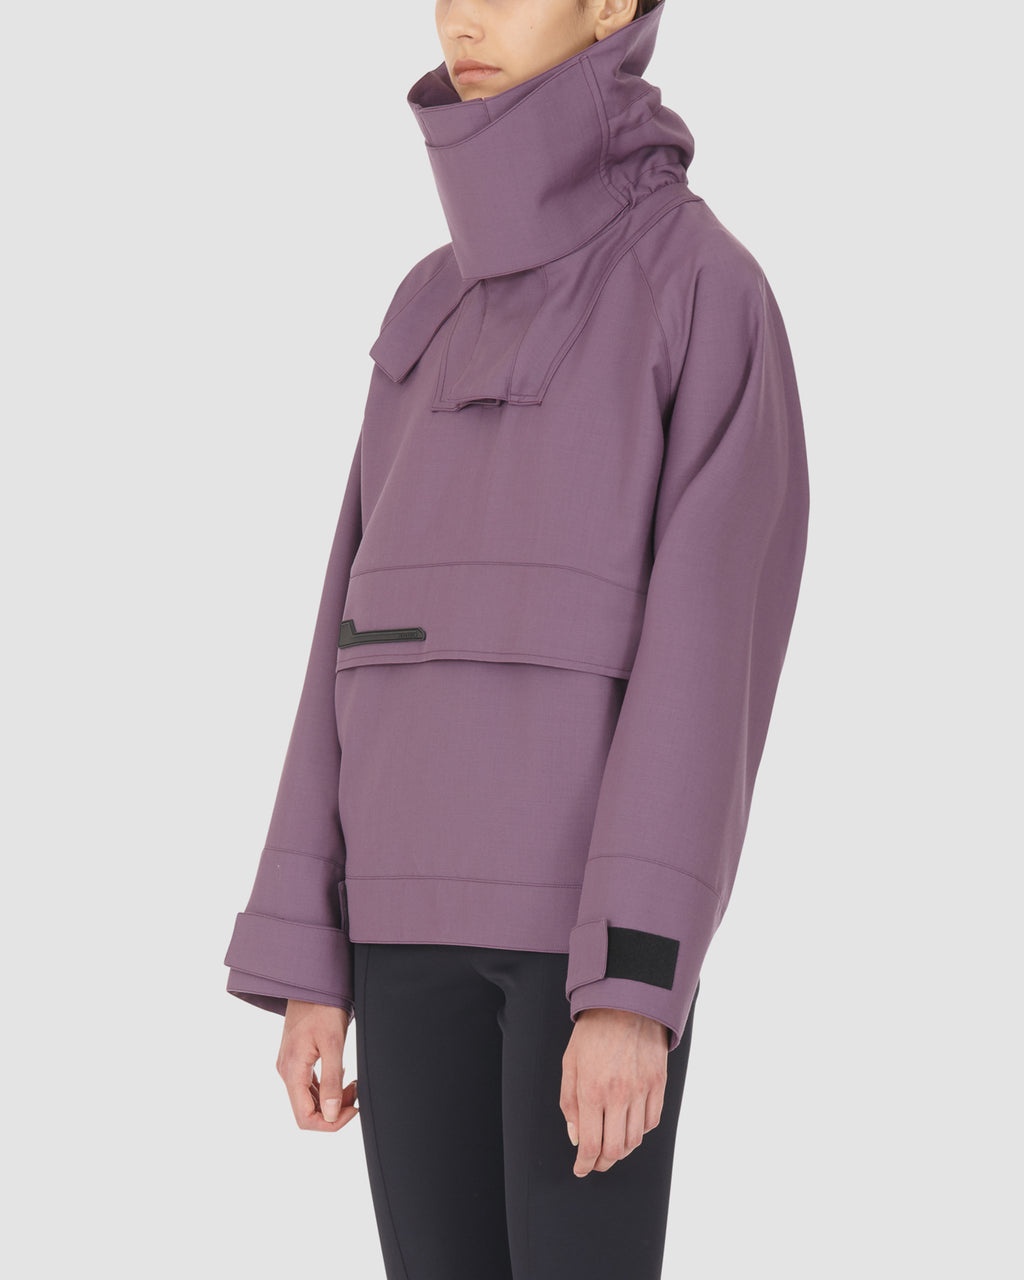 1017 ALYX 9SM | MIDNIGHT PULLOVER | Outerwear | Google Shopping, Outerwear, PURPLE, S20, S20 Drop II, Woman, WOMEN